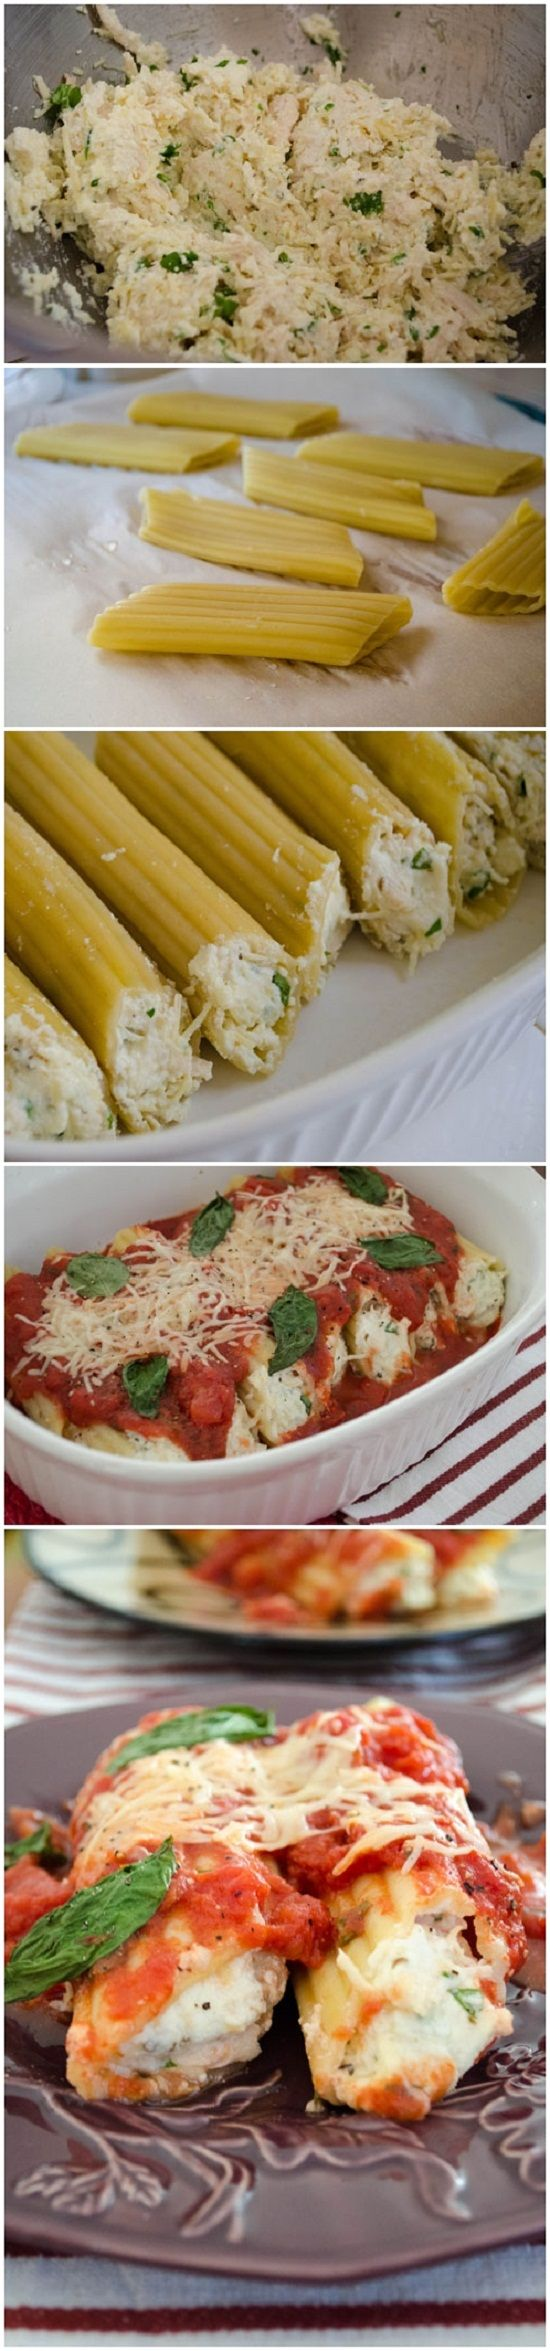 Parmesan Chicken Manicotti | Homemade Food Recipes